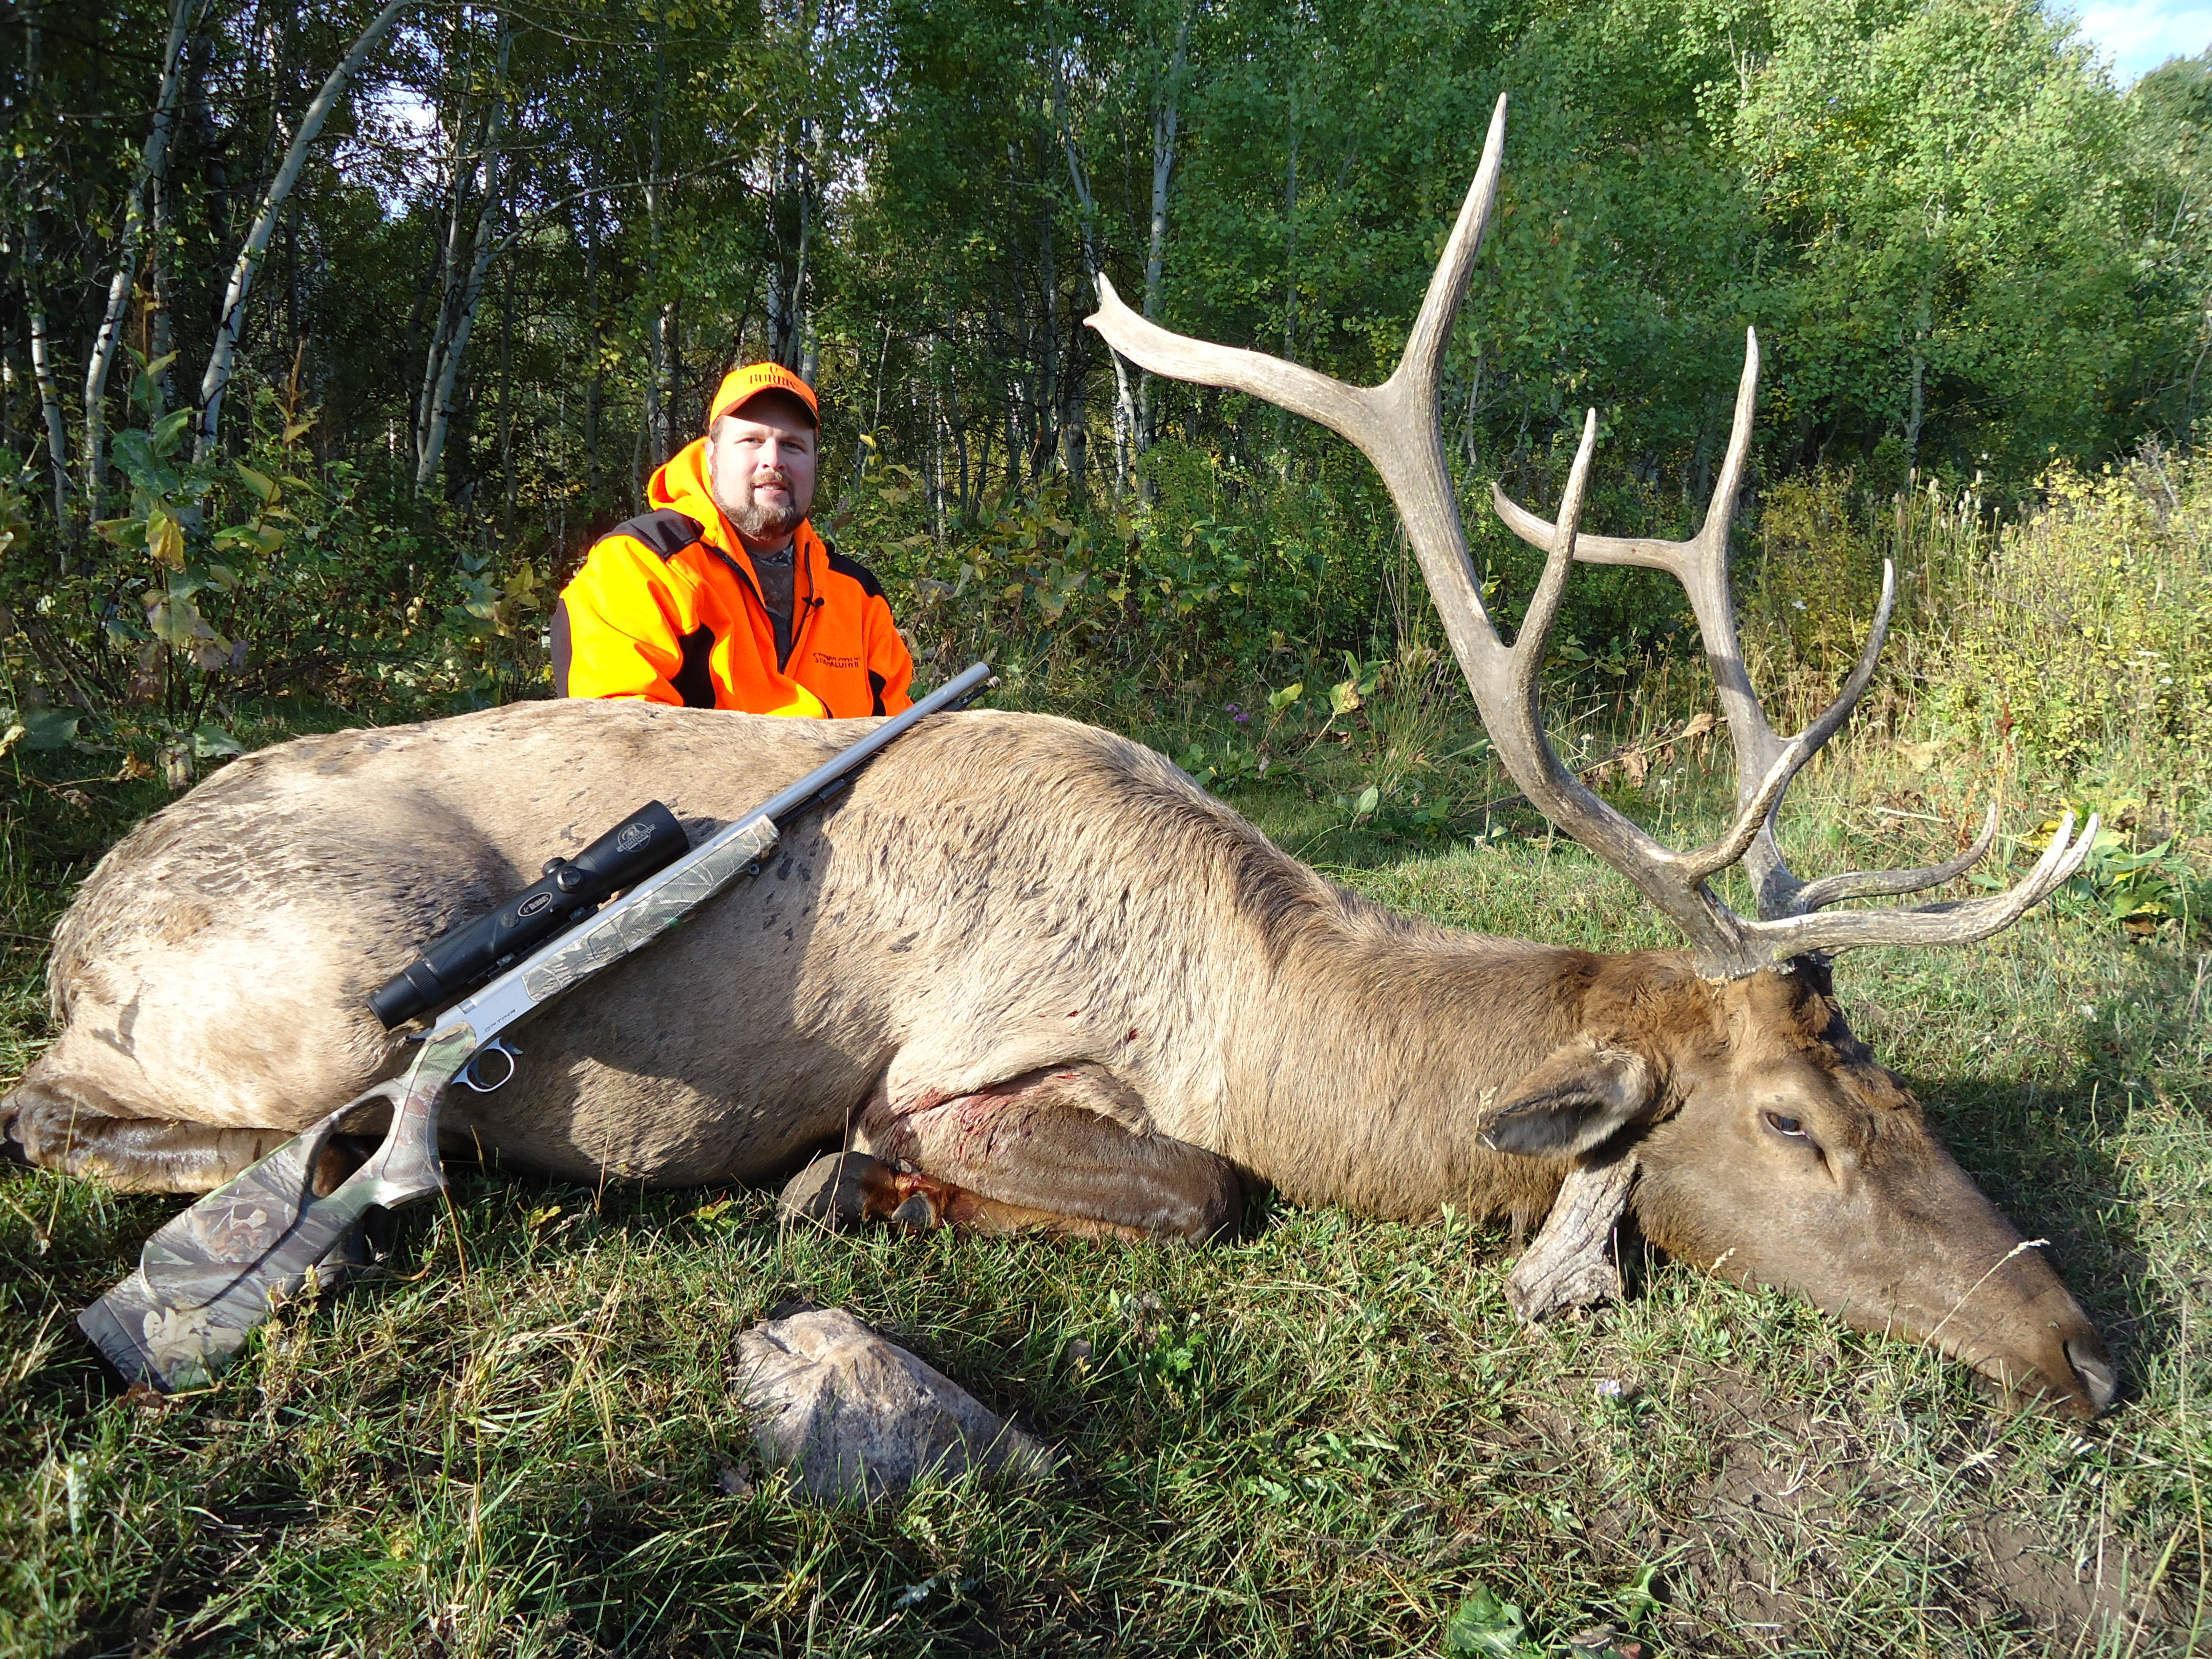 Steve West On His Utah Elk Hunt Uses CVA's Accura V2